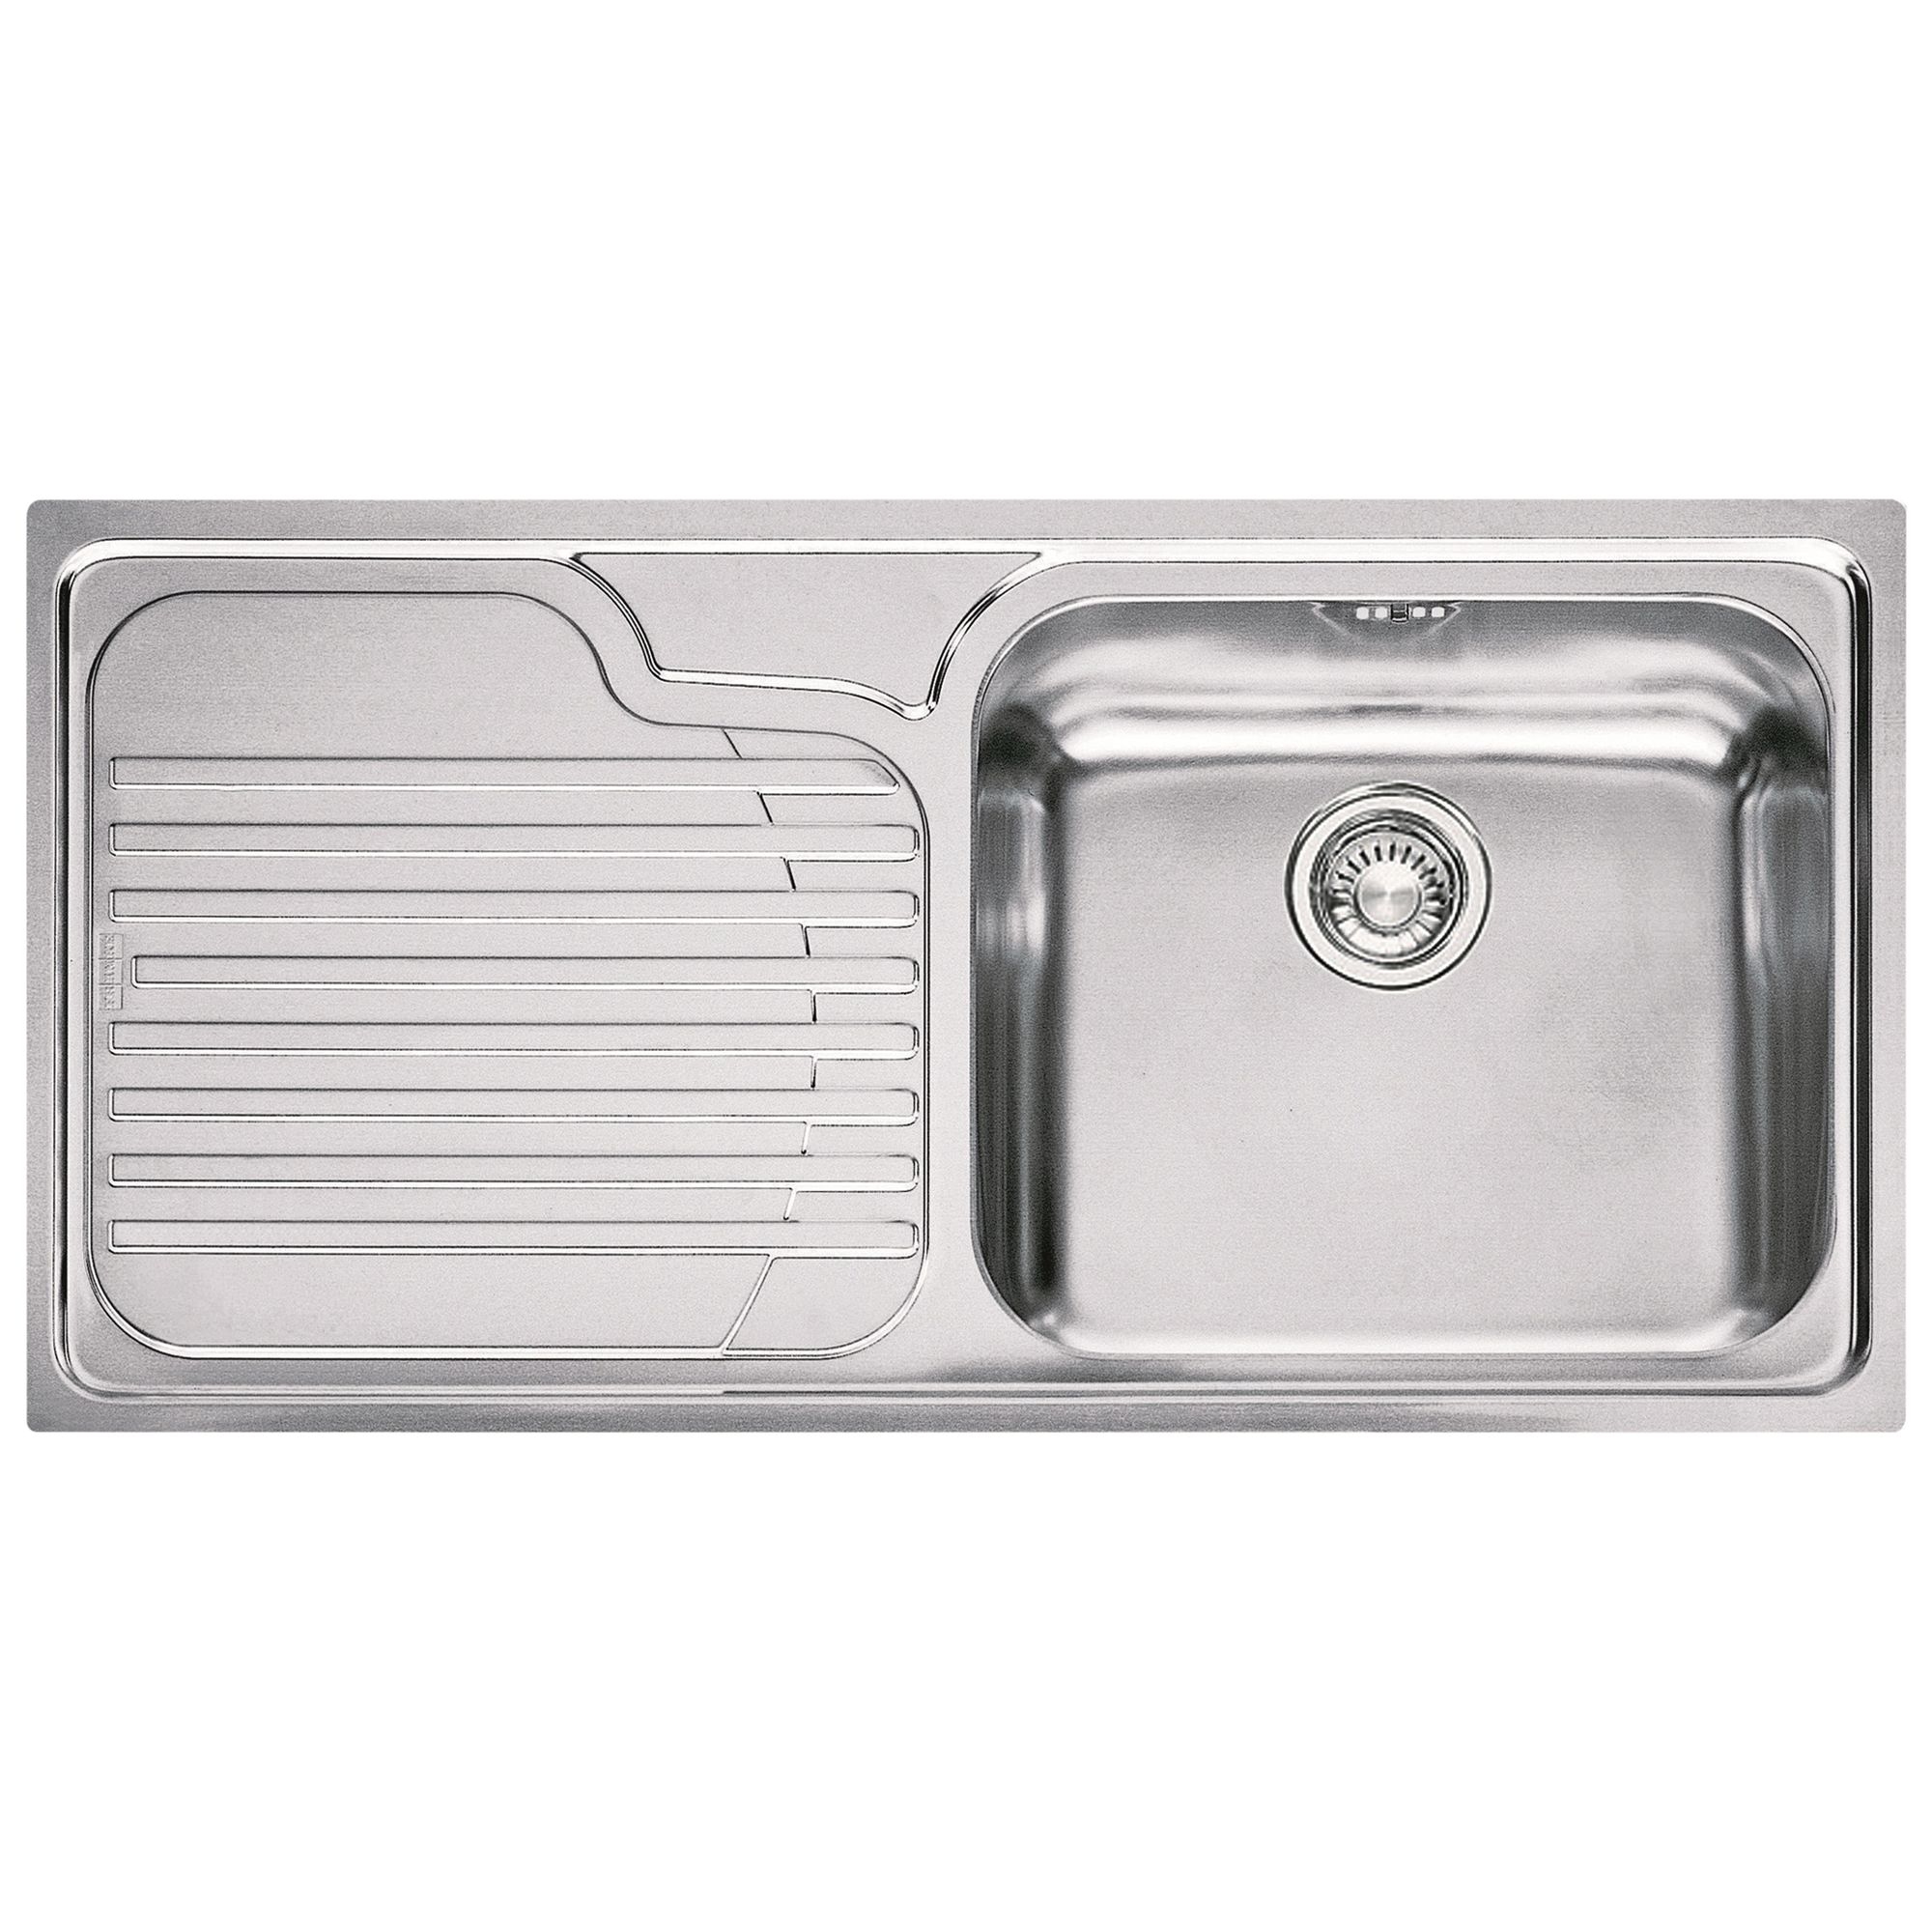 Franke Franke Galassia GAX 611 Inset Sink with Right Hand Bowl, Stainless Steel